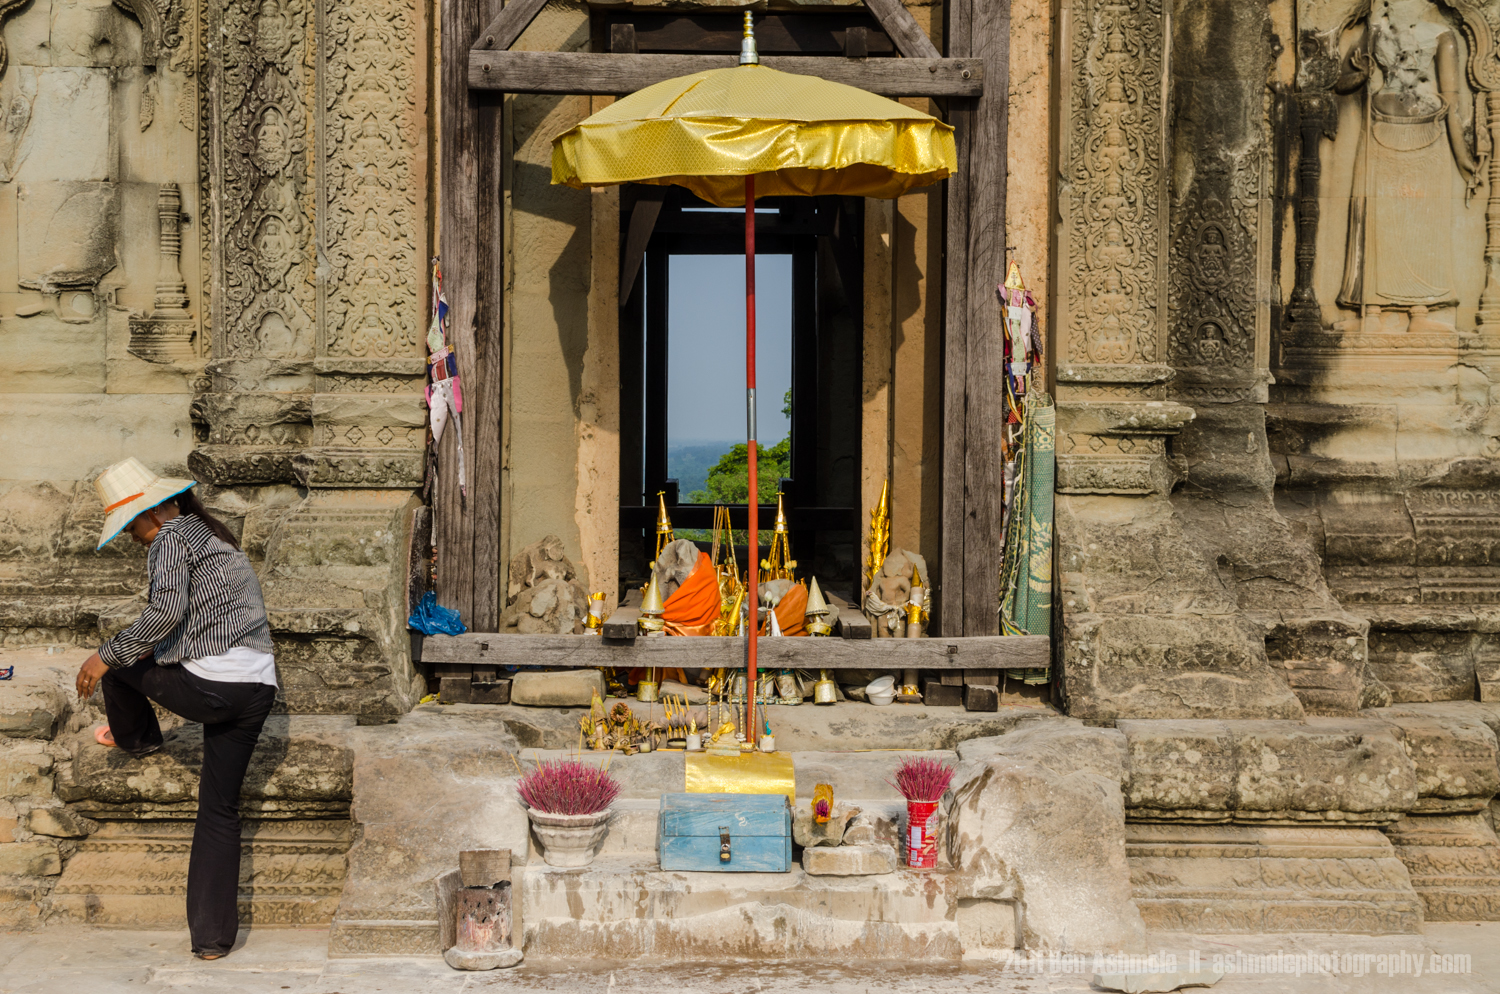 The Makeshift Shrine, Angkor, Cambodia, Ben Ashmole